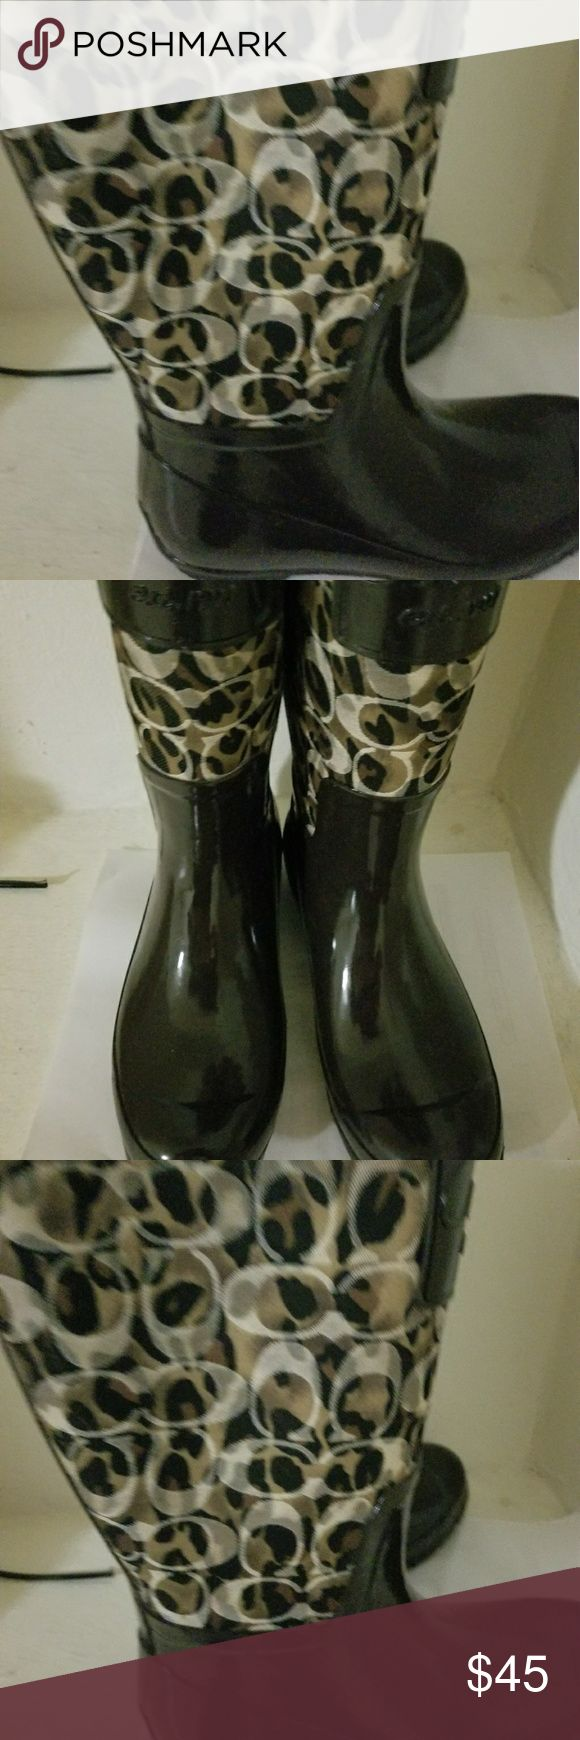 Coach rain boots very good conditition size 5 Coach rain boots size 5 Coach Shoes Winter & Rain Boots